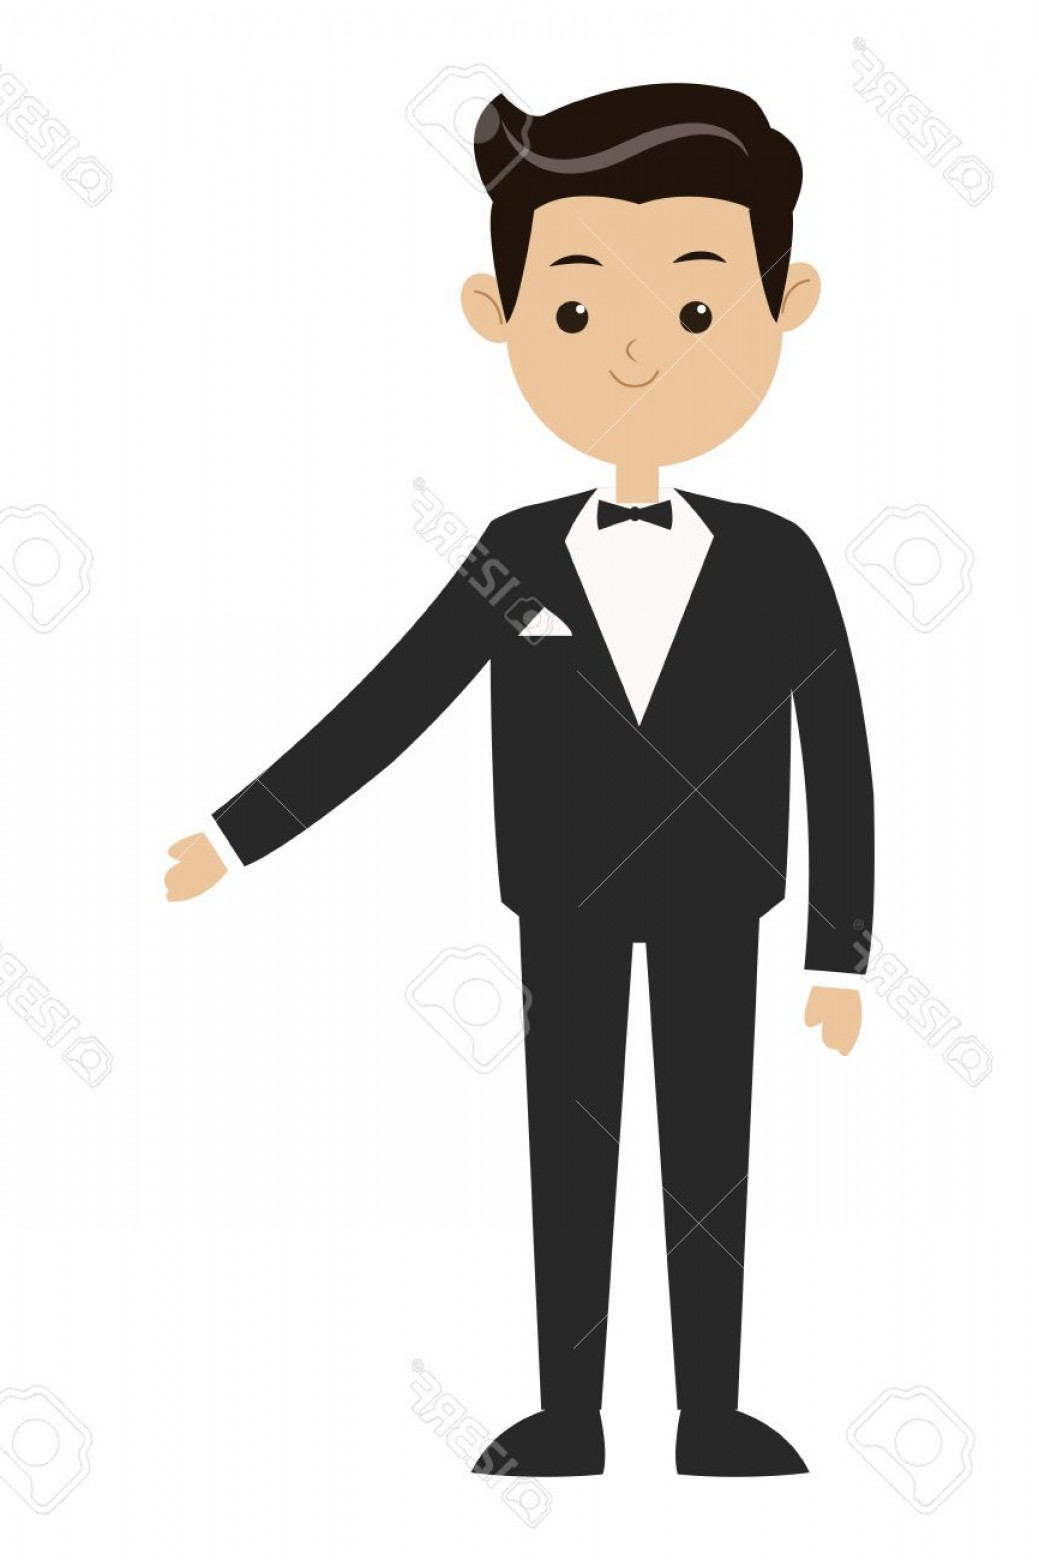 1039x1560 Bow Tie Vector Image Male Lazttweet